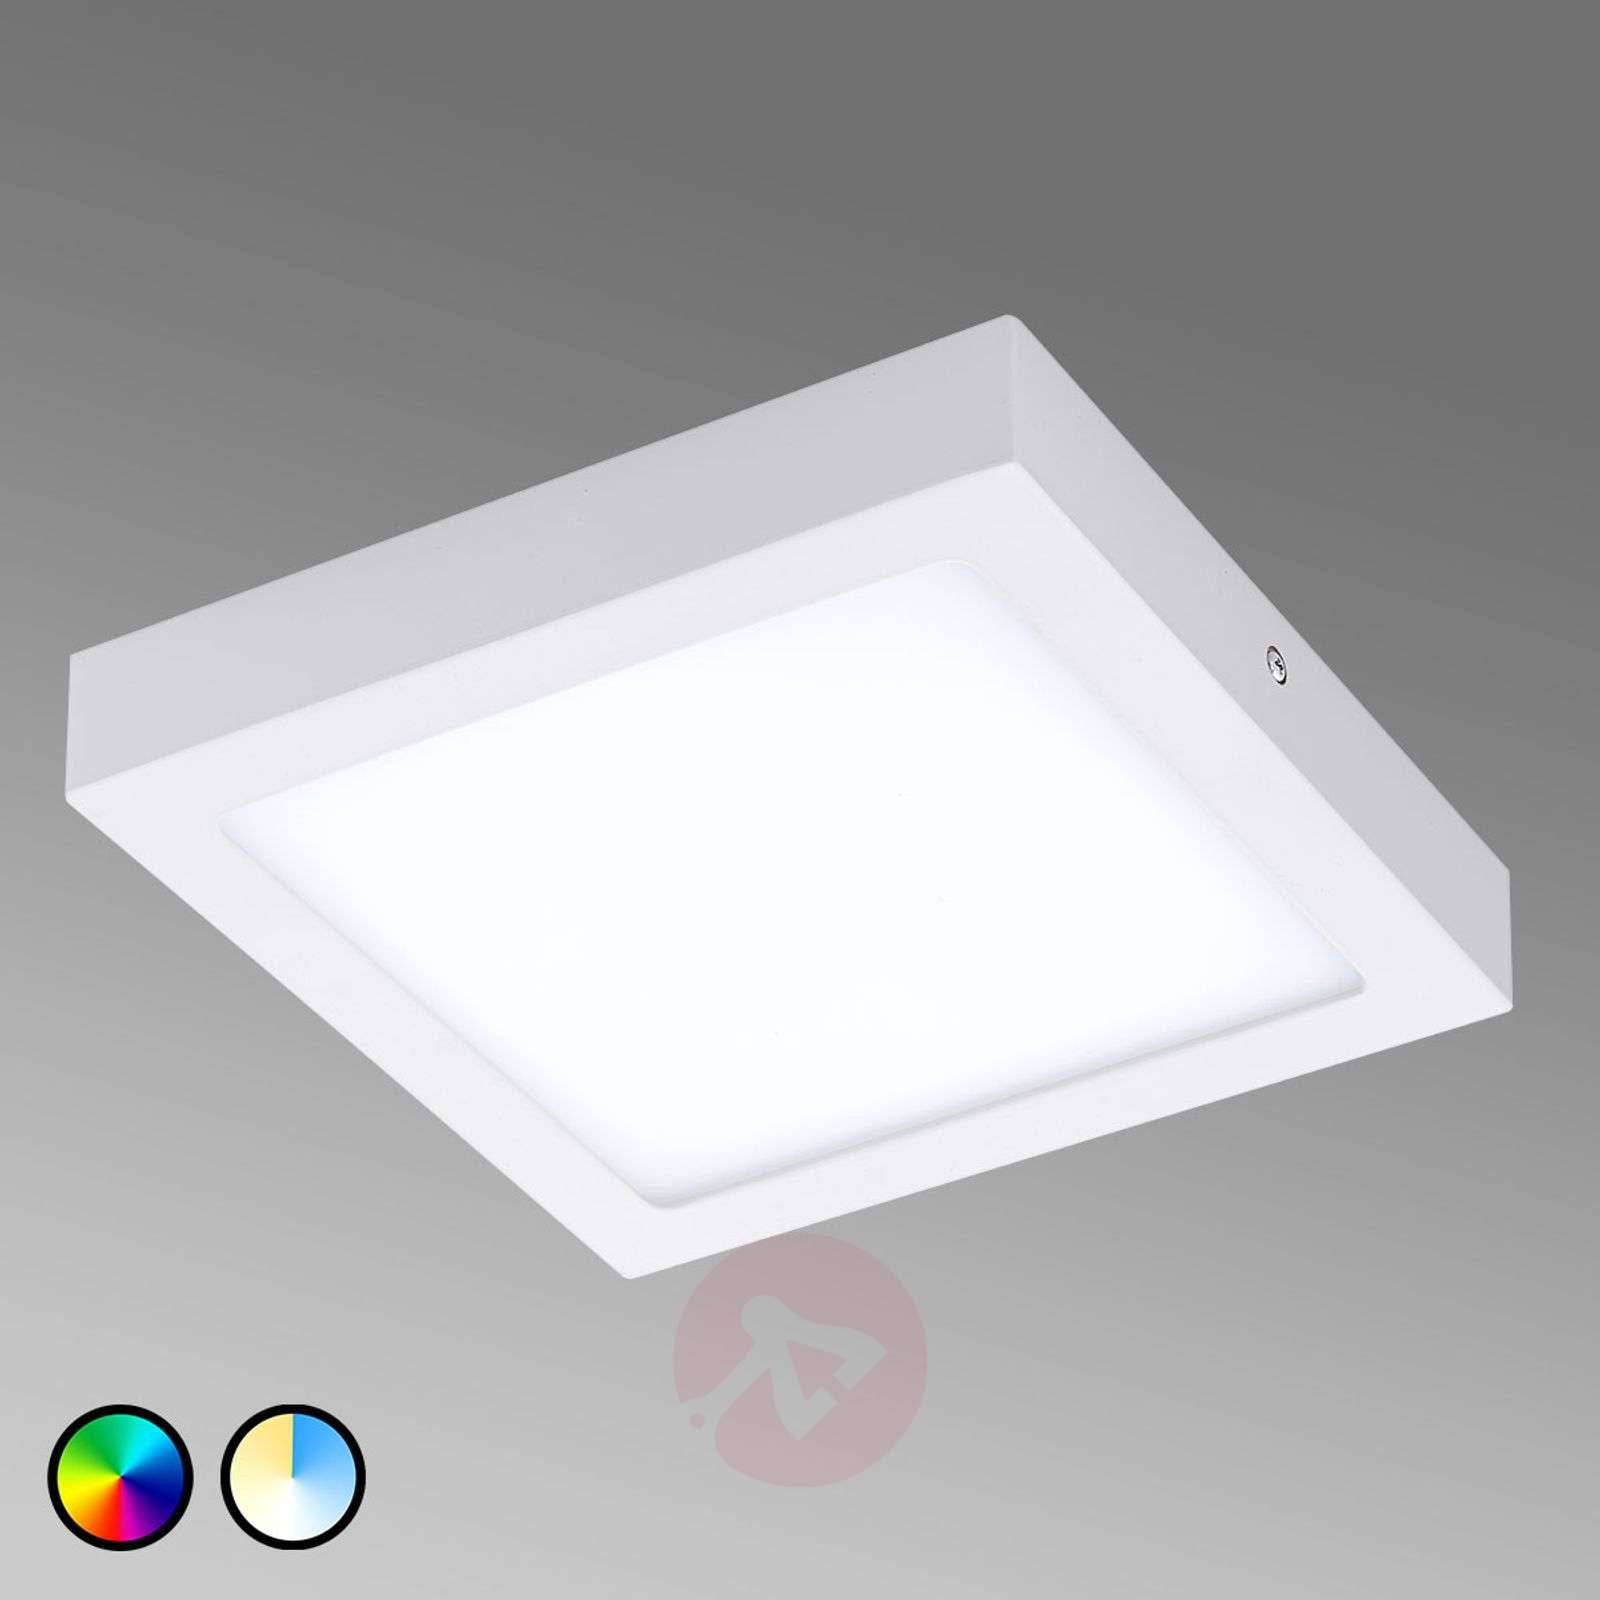 Plafoniera Eglo Led : Eglo corliano ceiling lamp squared led in inox steel and crystal